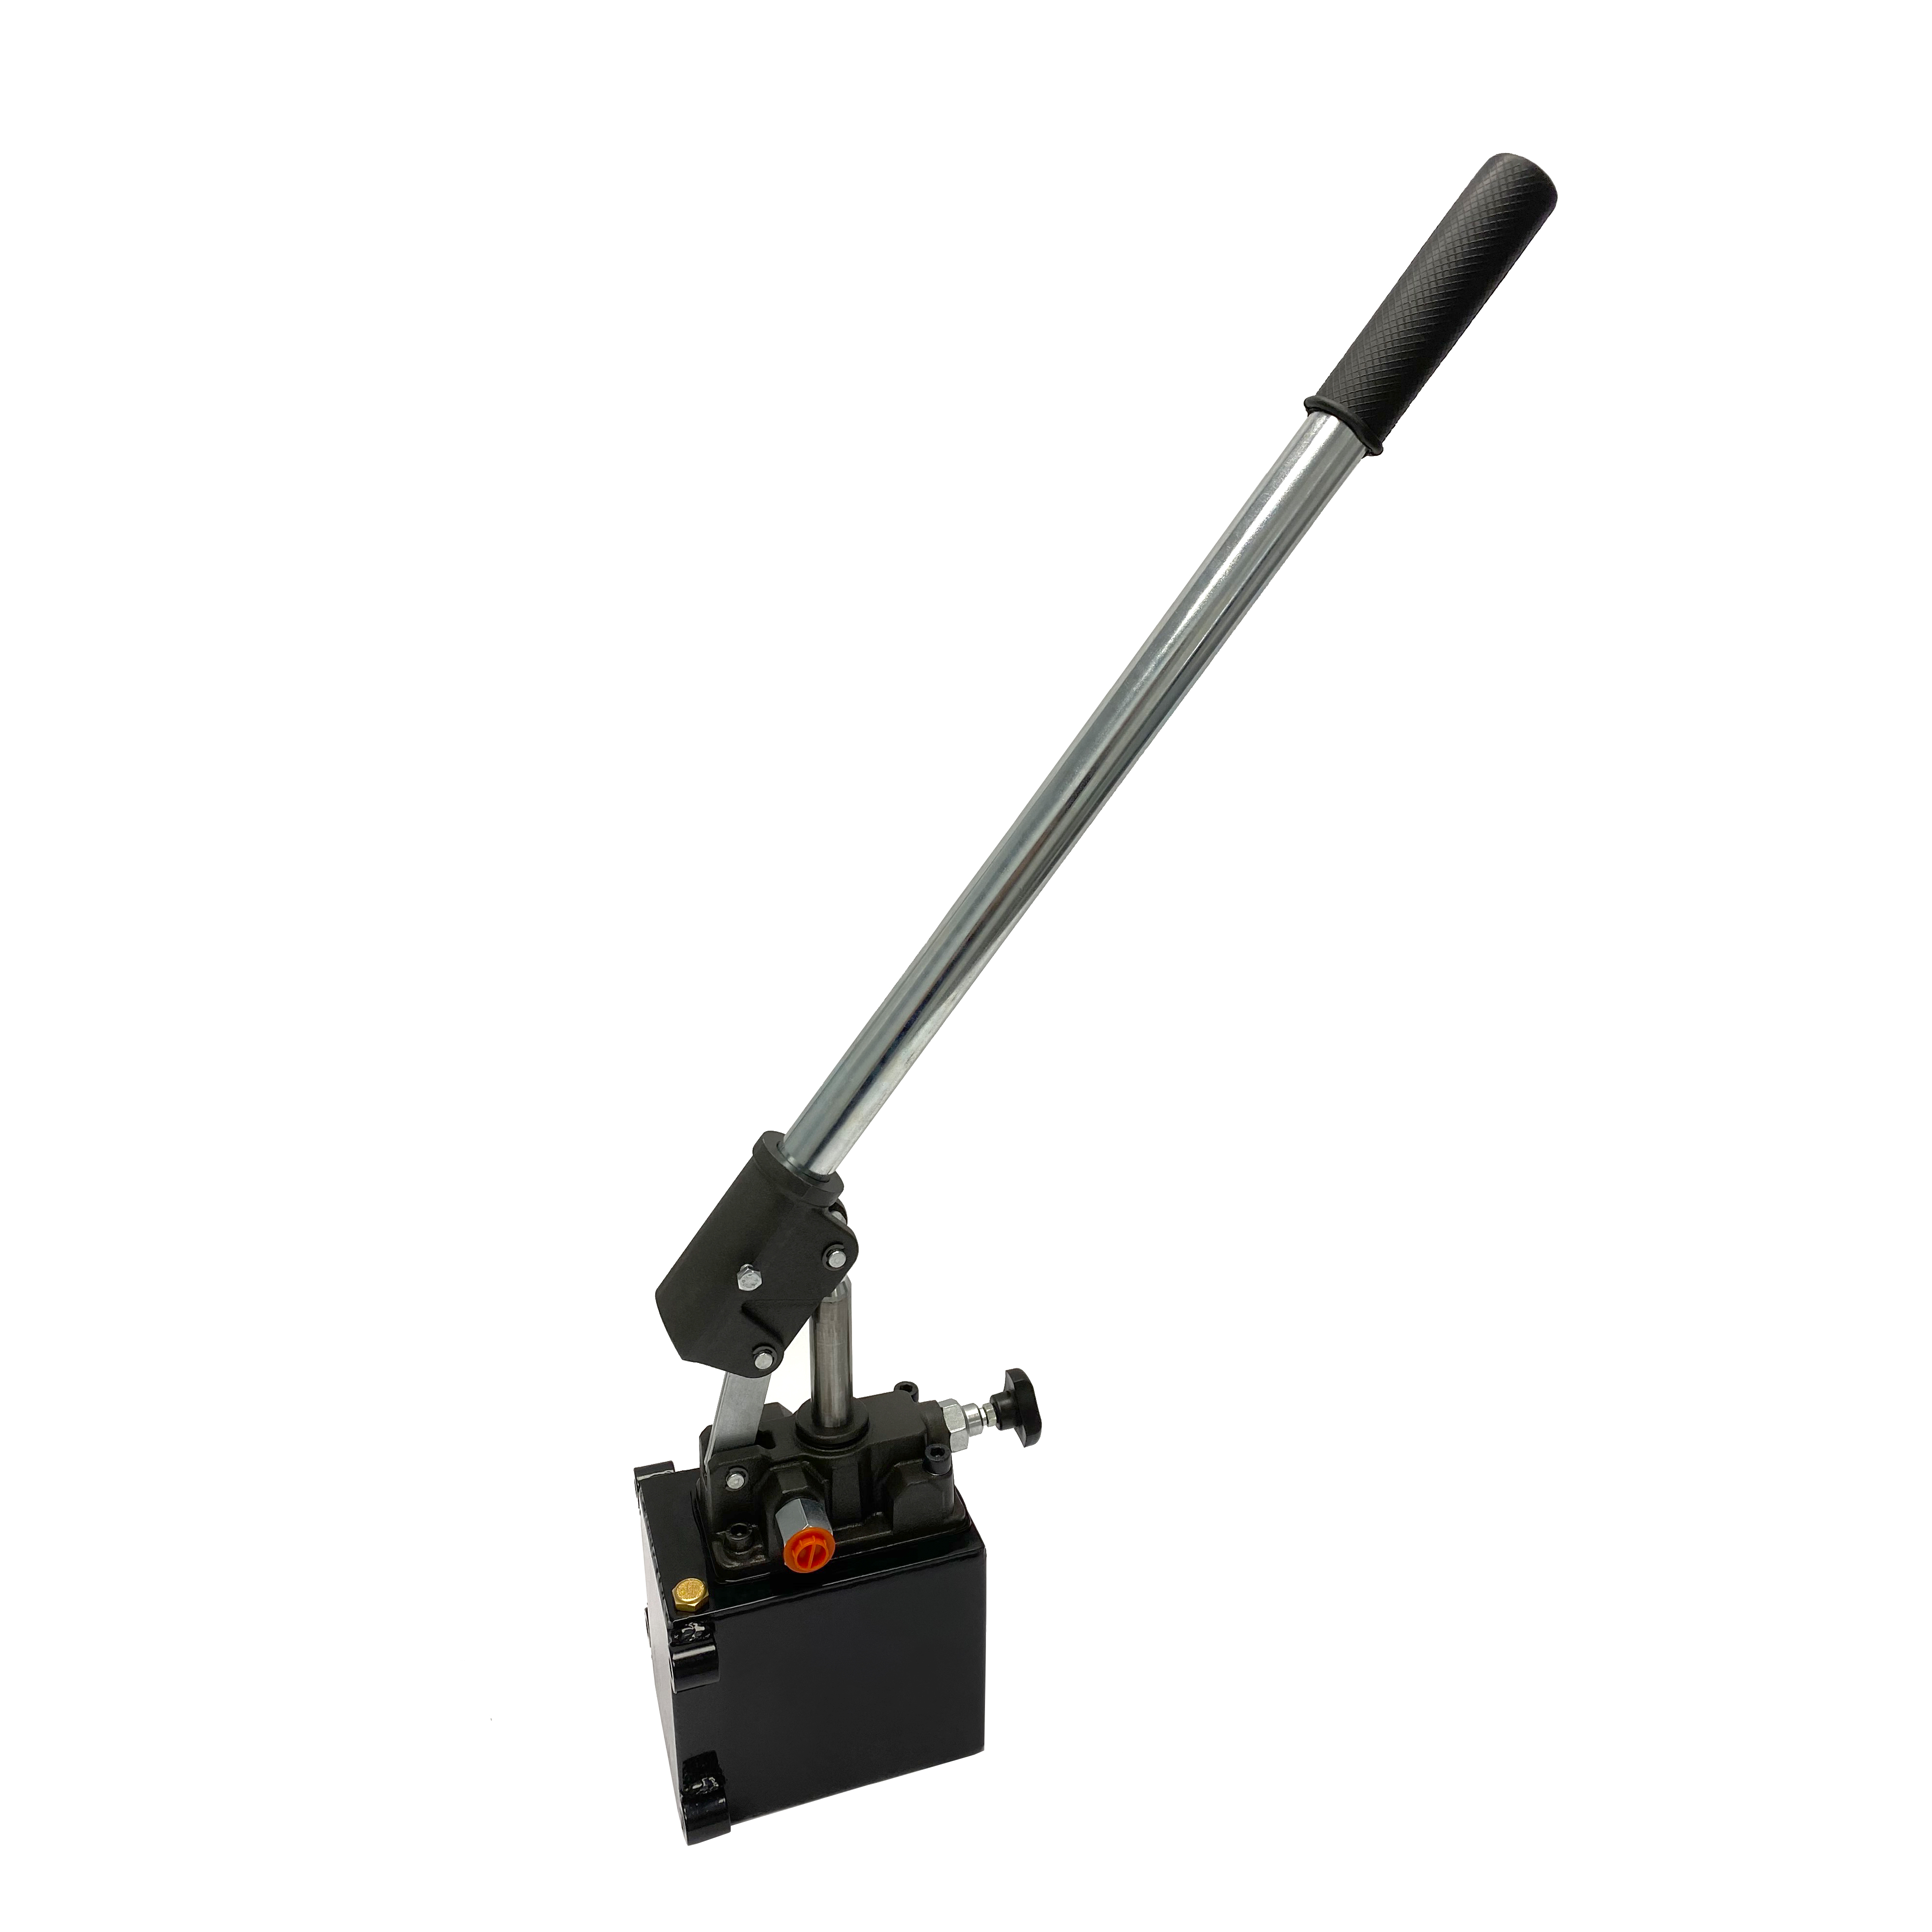 Hydraulic piston hand pump with release knob for single acting cylinder 1.5 CID with 1 quart steel tank by Hydro-Pack | Magister Hydraulics